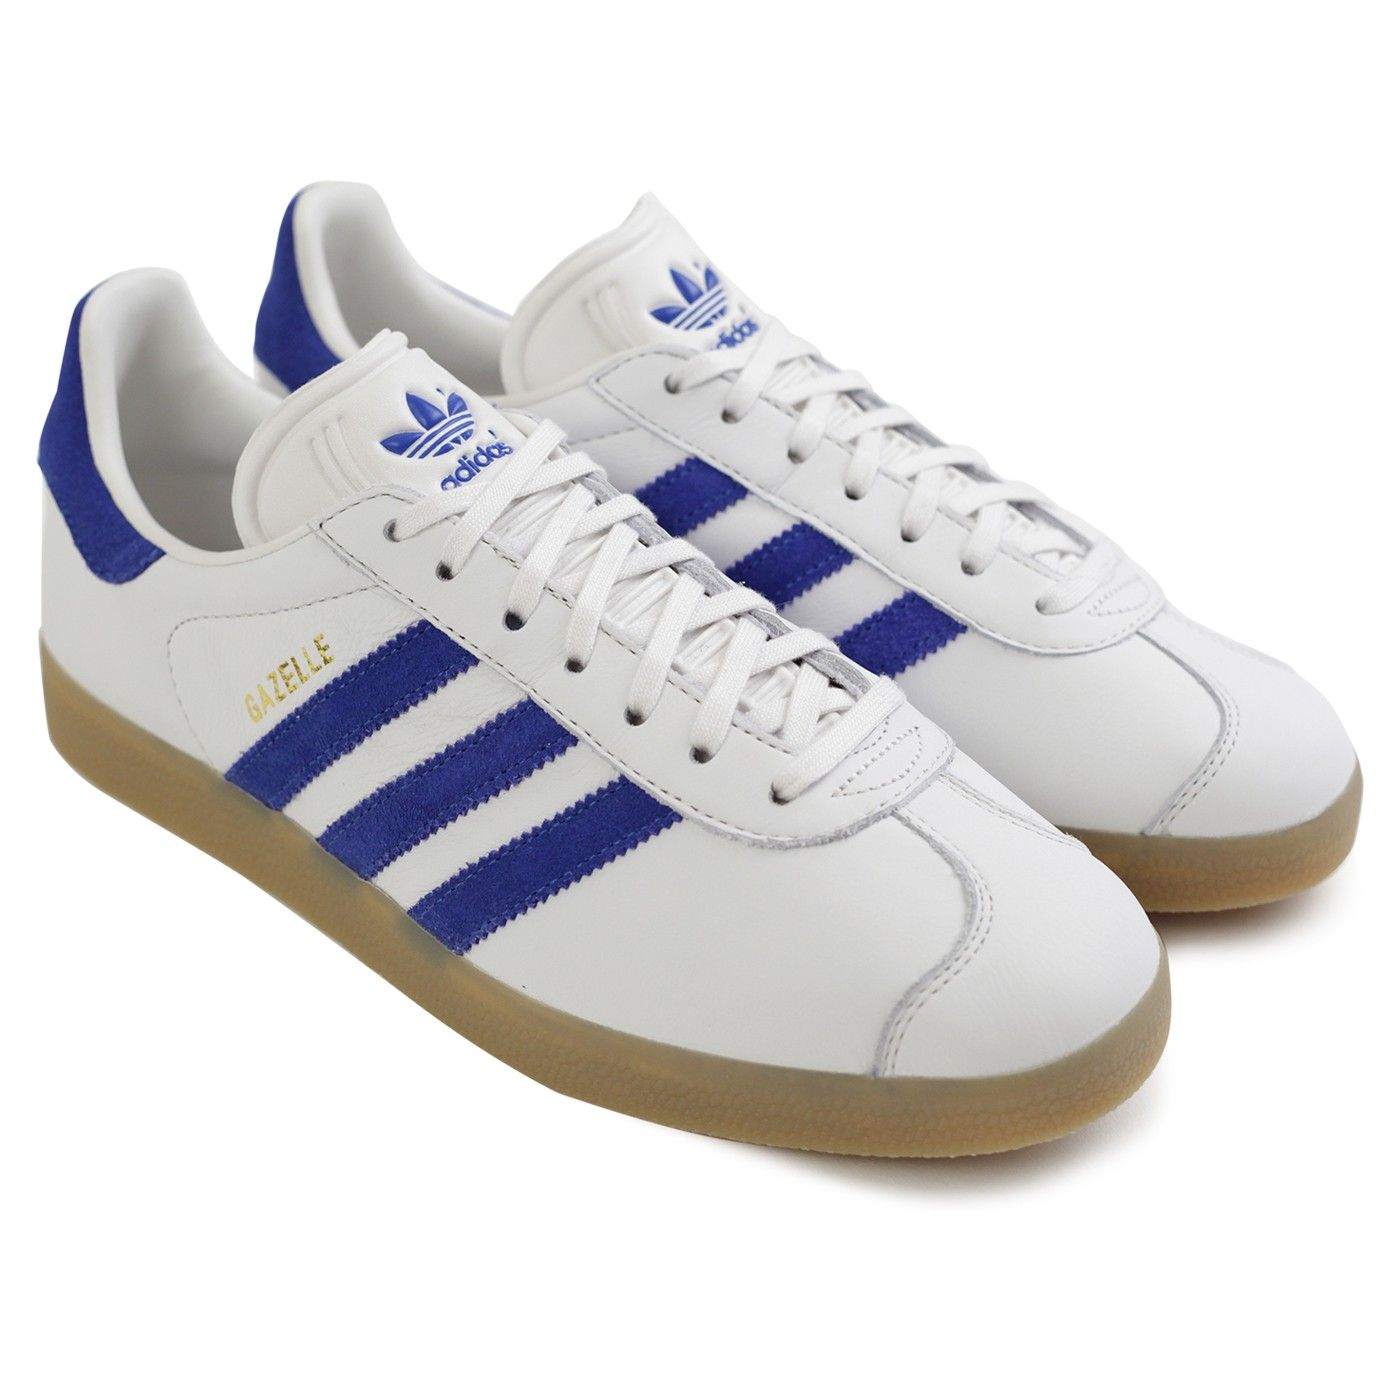 cheap for discount 399c4 6d463 Gazelle Shoes in Vintage White  Bold Blue  Gum by Adidas Originals